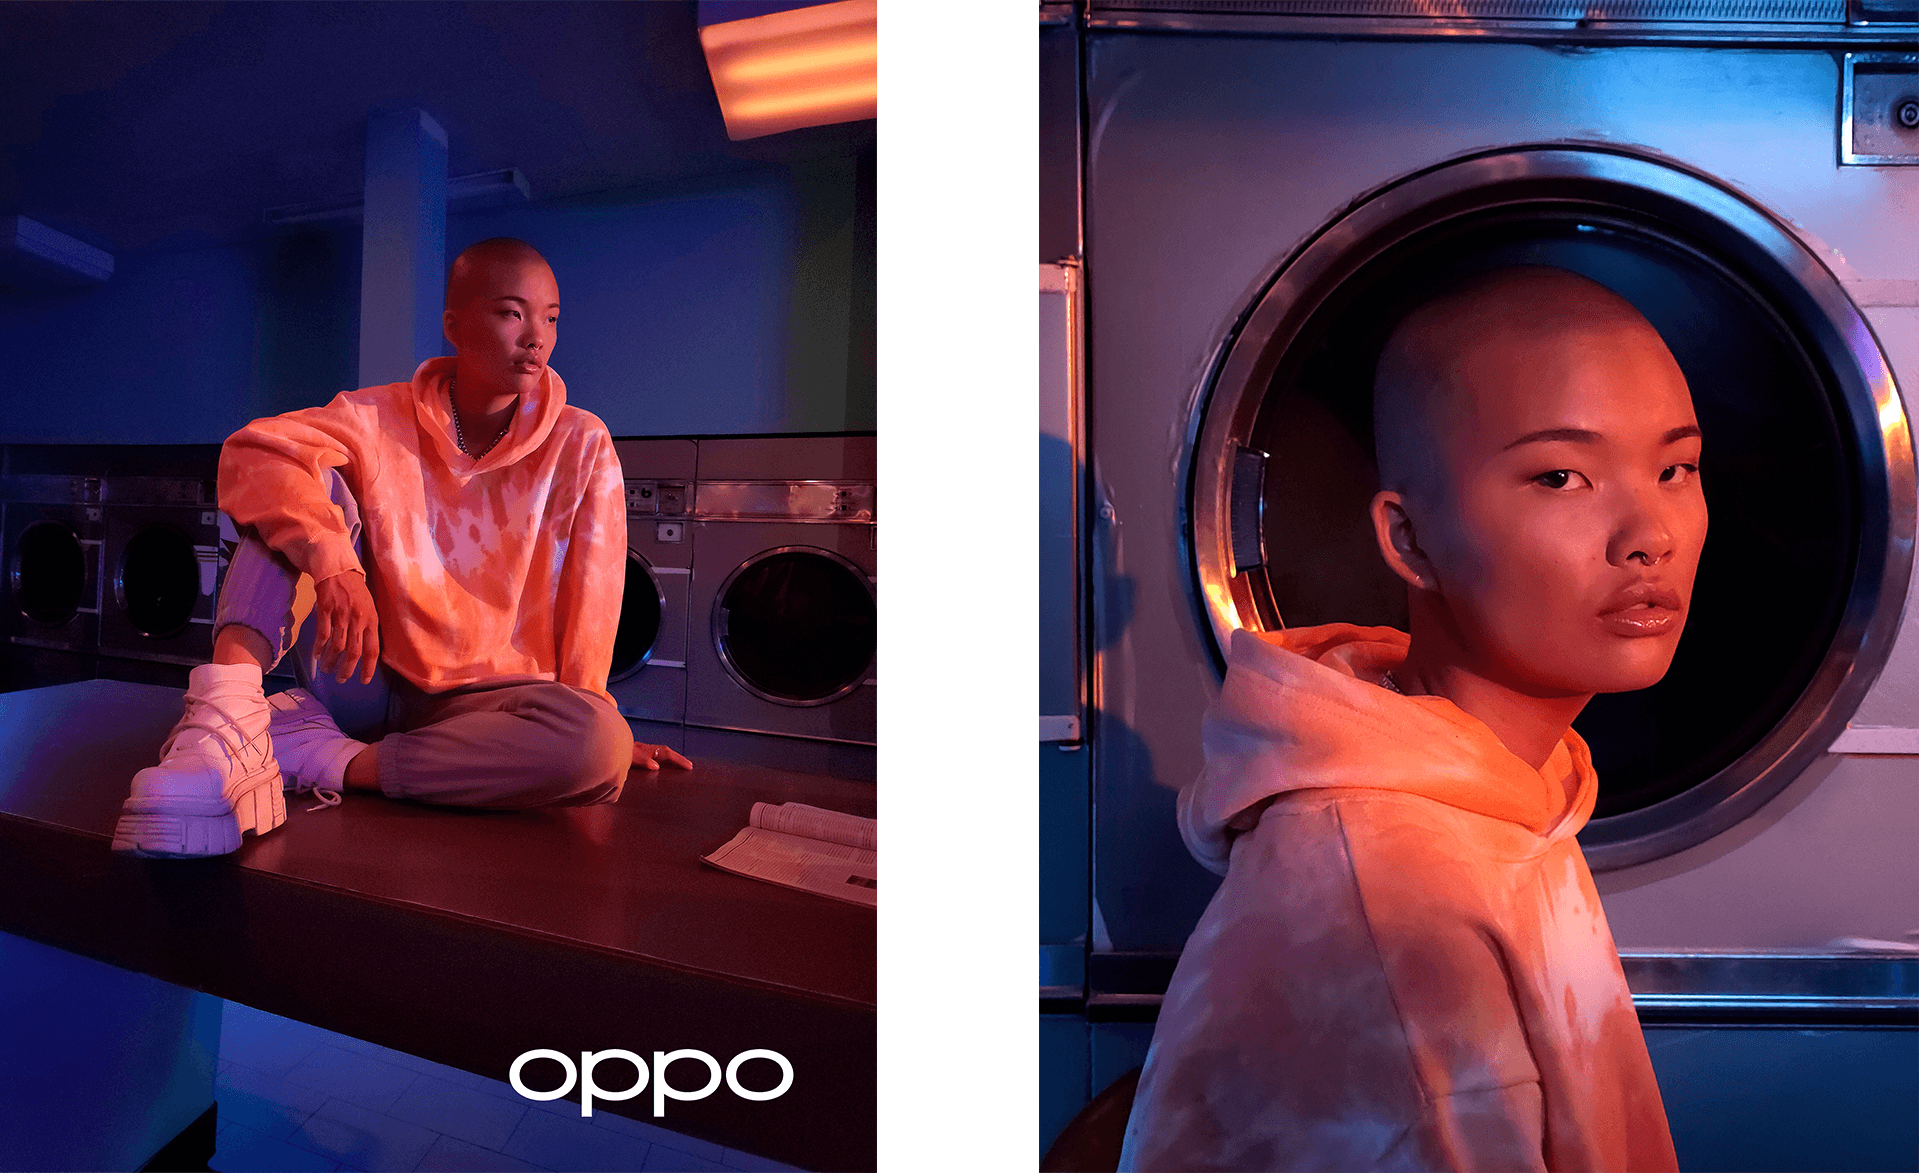 asian model in colored pink and blue lighting looking up for Oppo campaign in a lavomat Hungry and Foolish filmed and photographed by Simon Duhamel